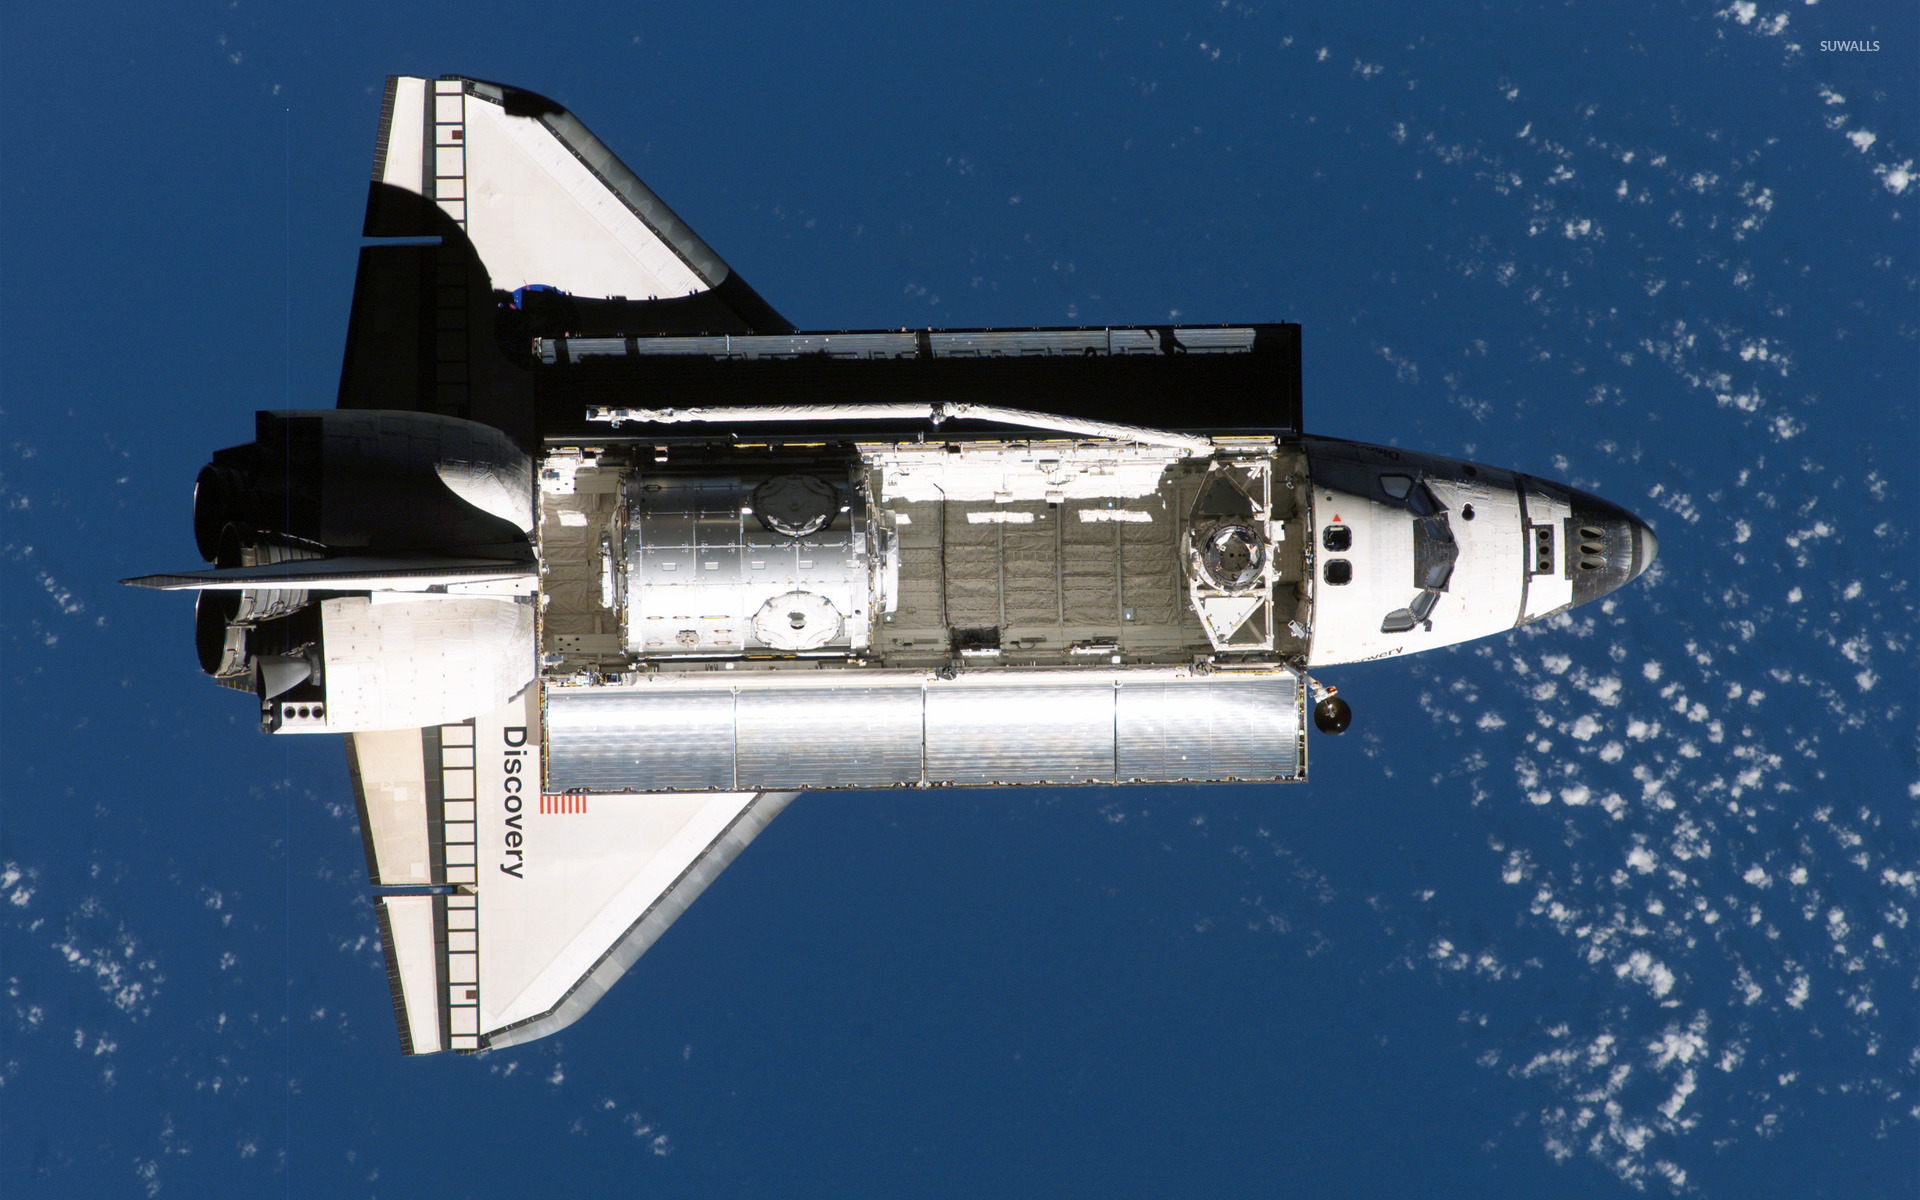 Space Shuttle Discovery wallpaper - Space wallpapers - #11428